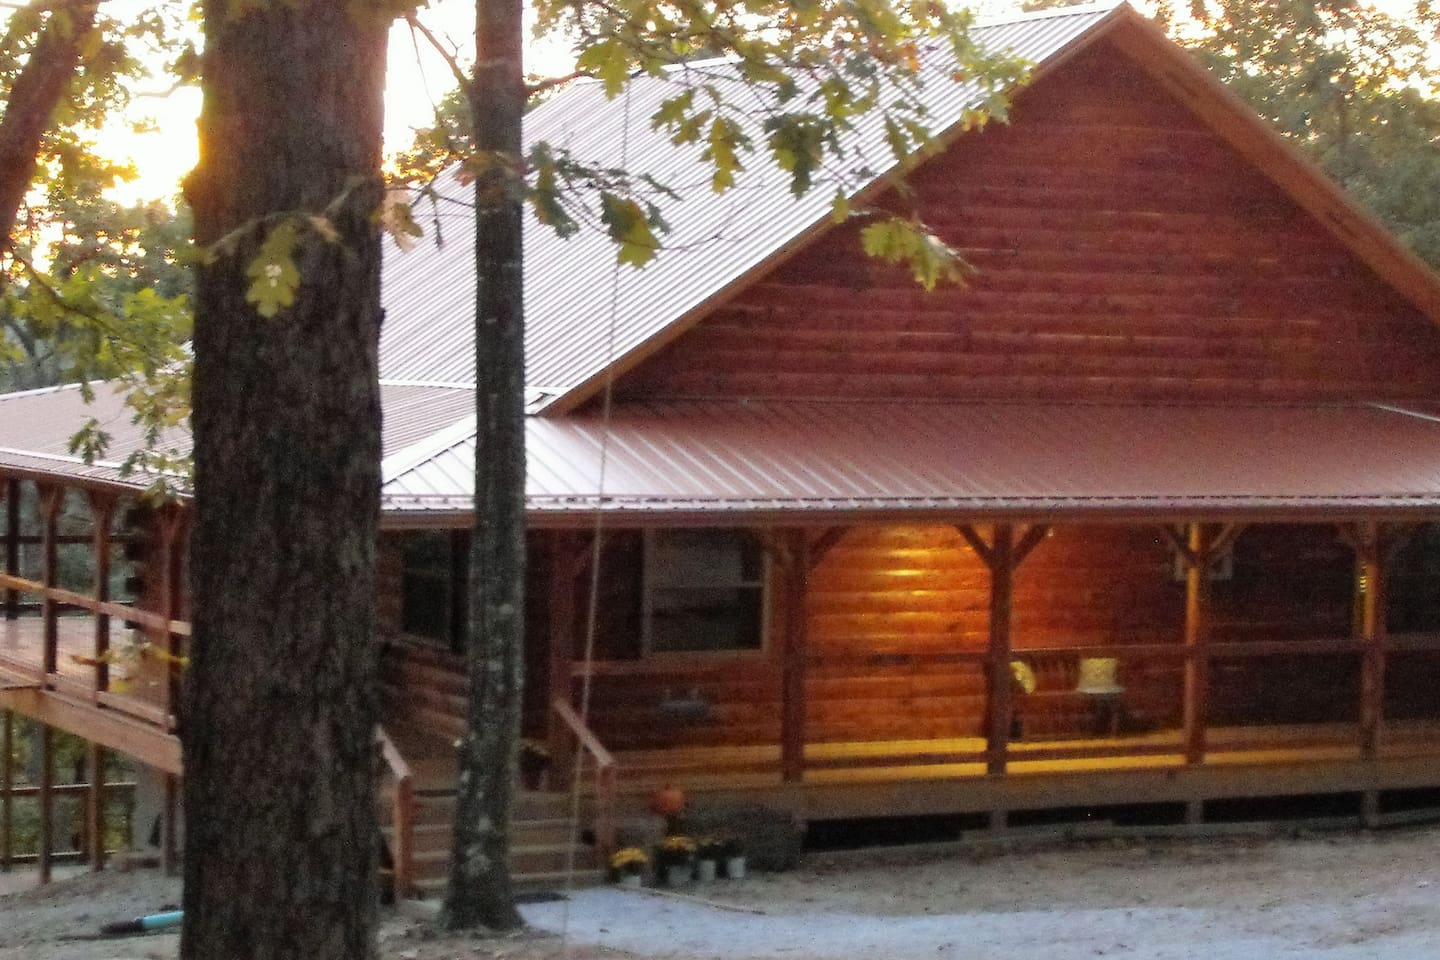 the cabin and bed deal image from in ha arkansas property s cabins yards conservation hotels area equipped comfortable beach well near jasper luxury home